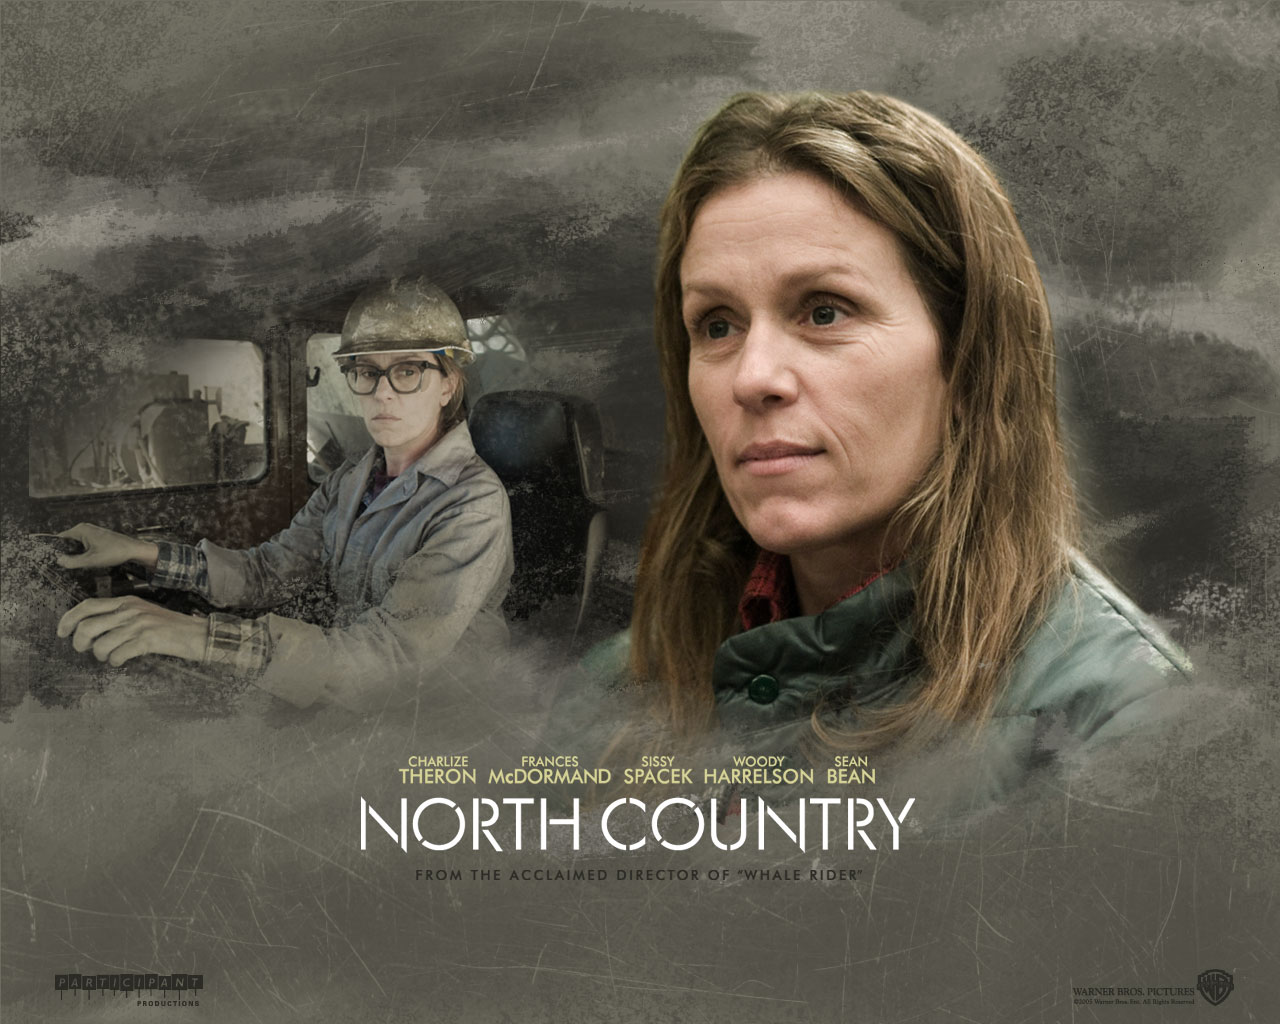 http://4.bp.blogspot.com/_9Izdq8bedtQ/TUNNpE1DA1I/AAAAAAAAiRE/v3yJ0RI1y_o/s1600/Frances_McDormand_in_North_Country_Wallpaper_4_1280.jpg